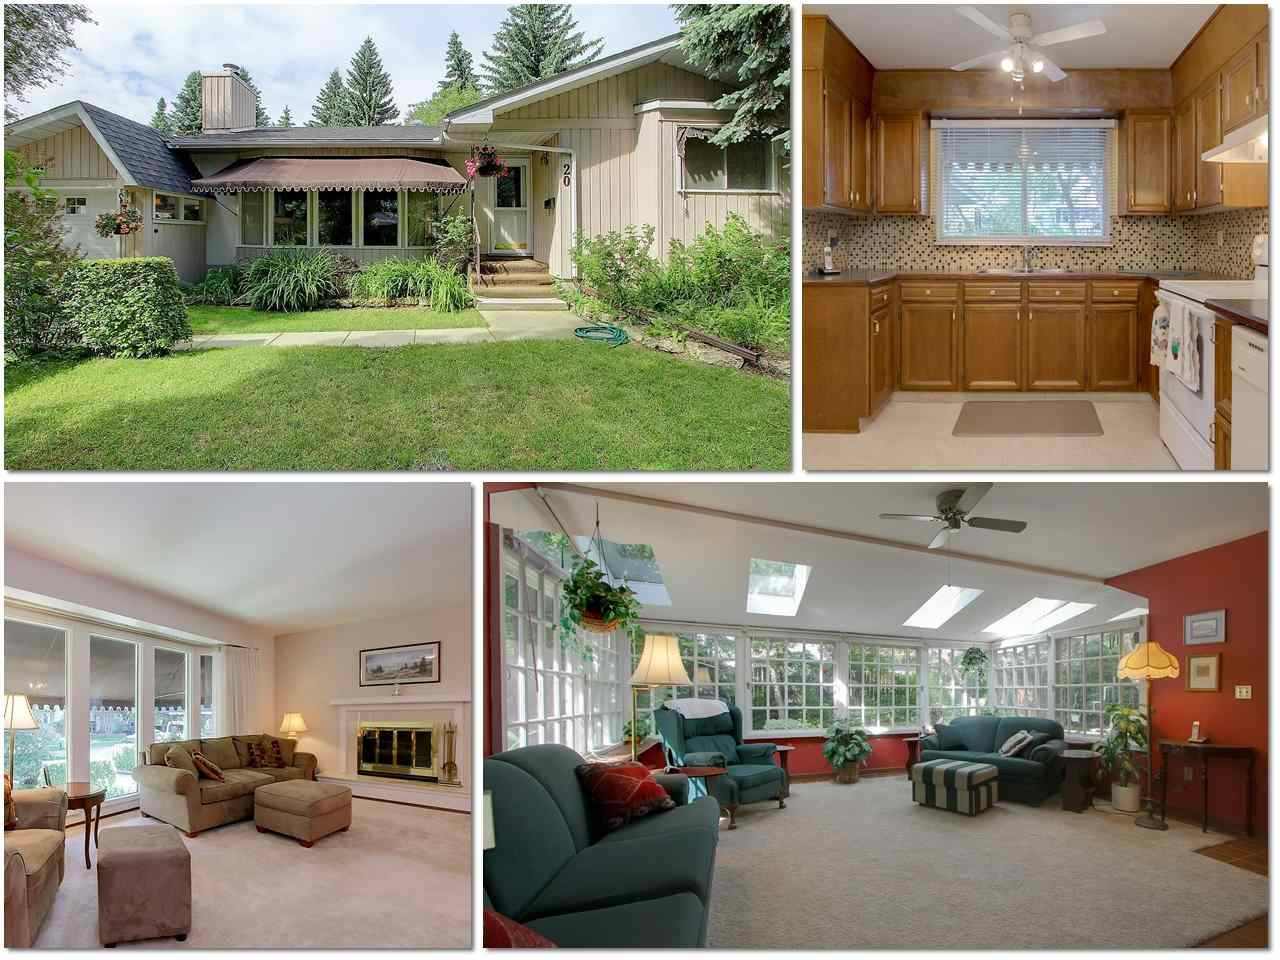 Main Photo: 20 FAIR OAKS Drive: St. Albert House for sale : MLS(r) # E4070683